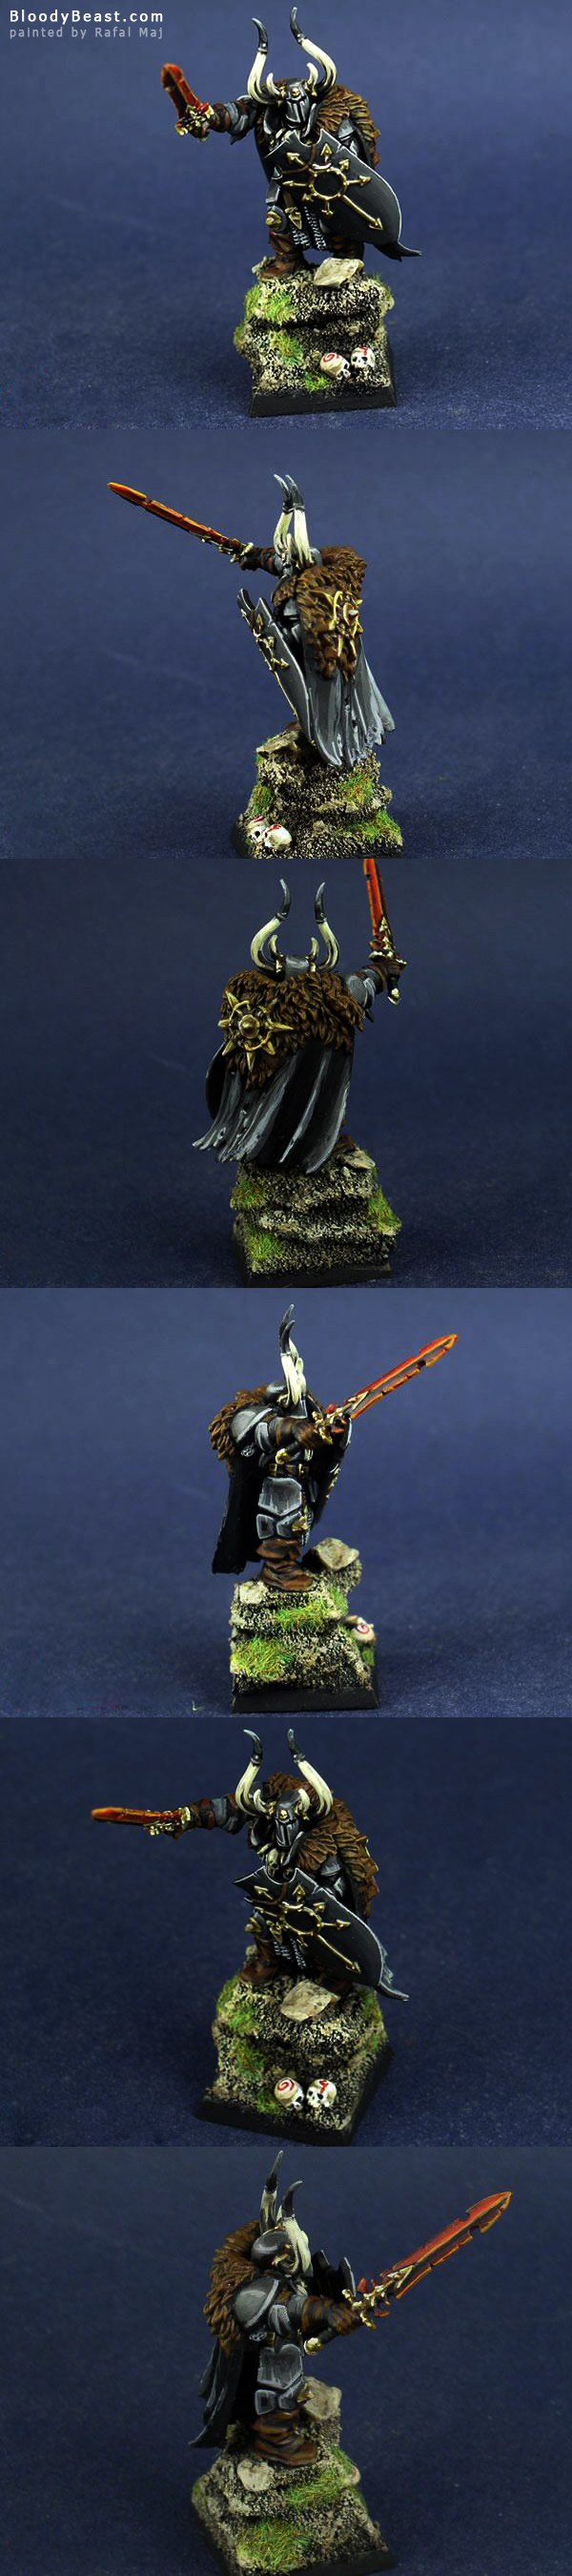 Chaos Lord of Undivided painted by Rafal Maj (BloodyBeast.com)